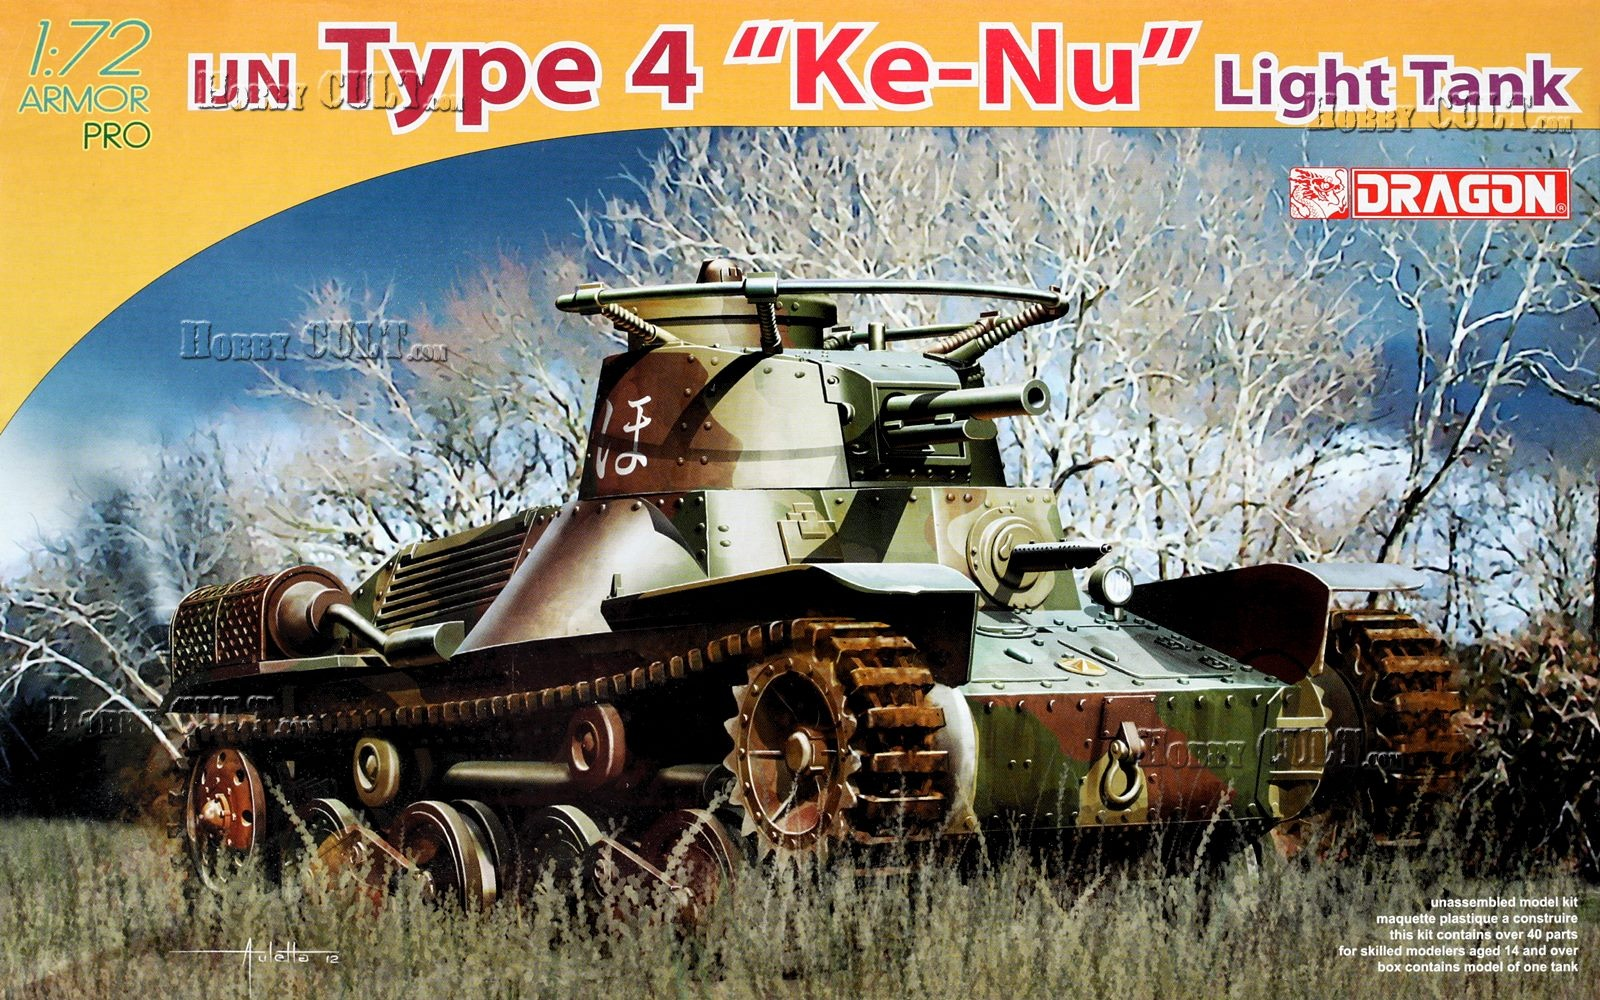 1:72 IJN Type 4 'Ke-Nu' Light Tank